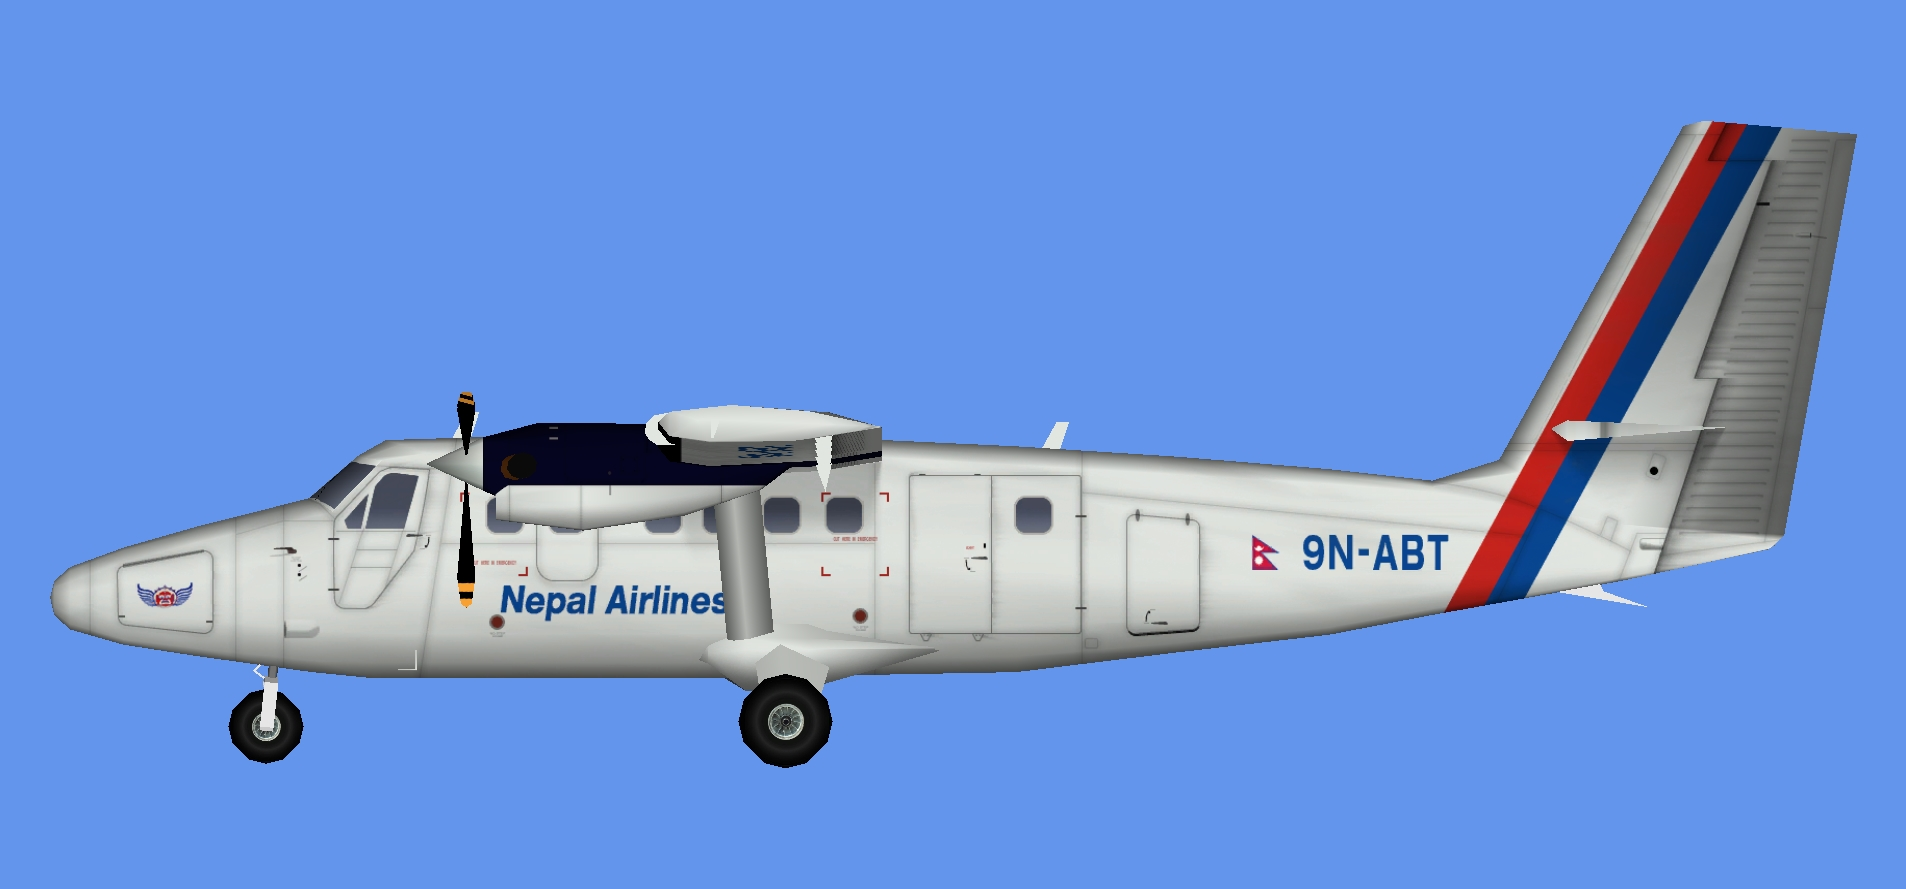 Nepal Airlines DHC-6 300